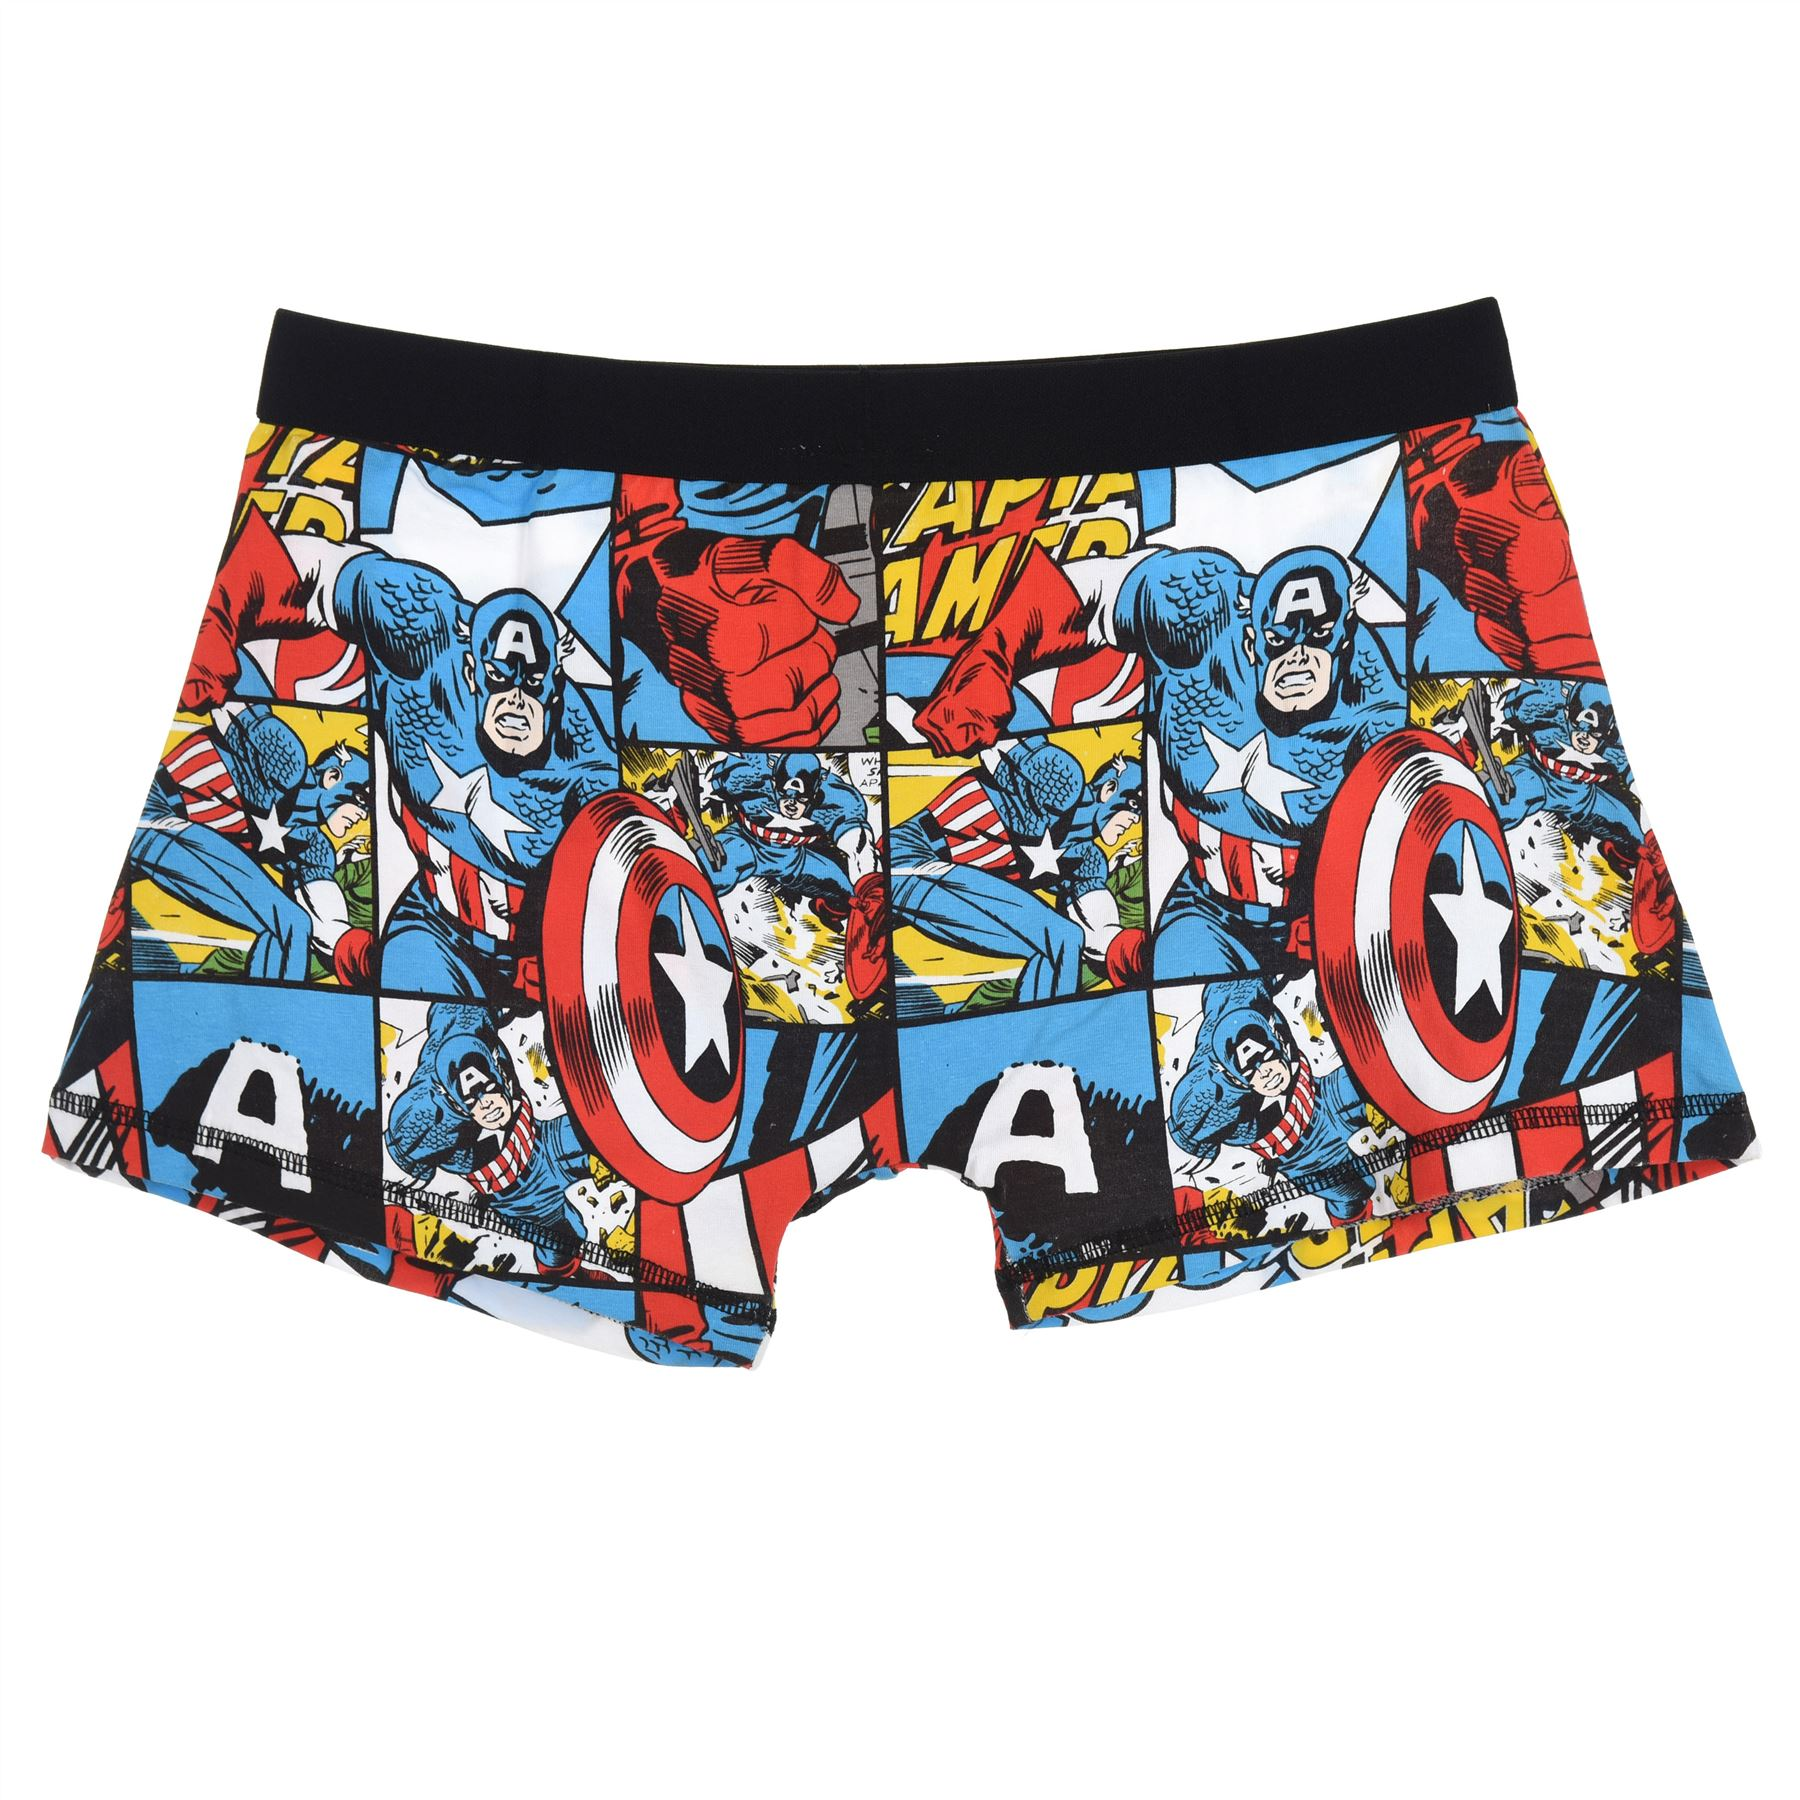 Mens-Official-Character-Trunks-Boxer-Shorts-Boxers-Underwear-2-Pack-Size-S-XL thumbnail 19